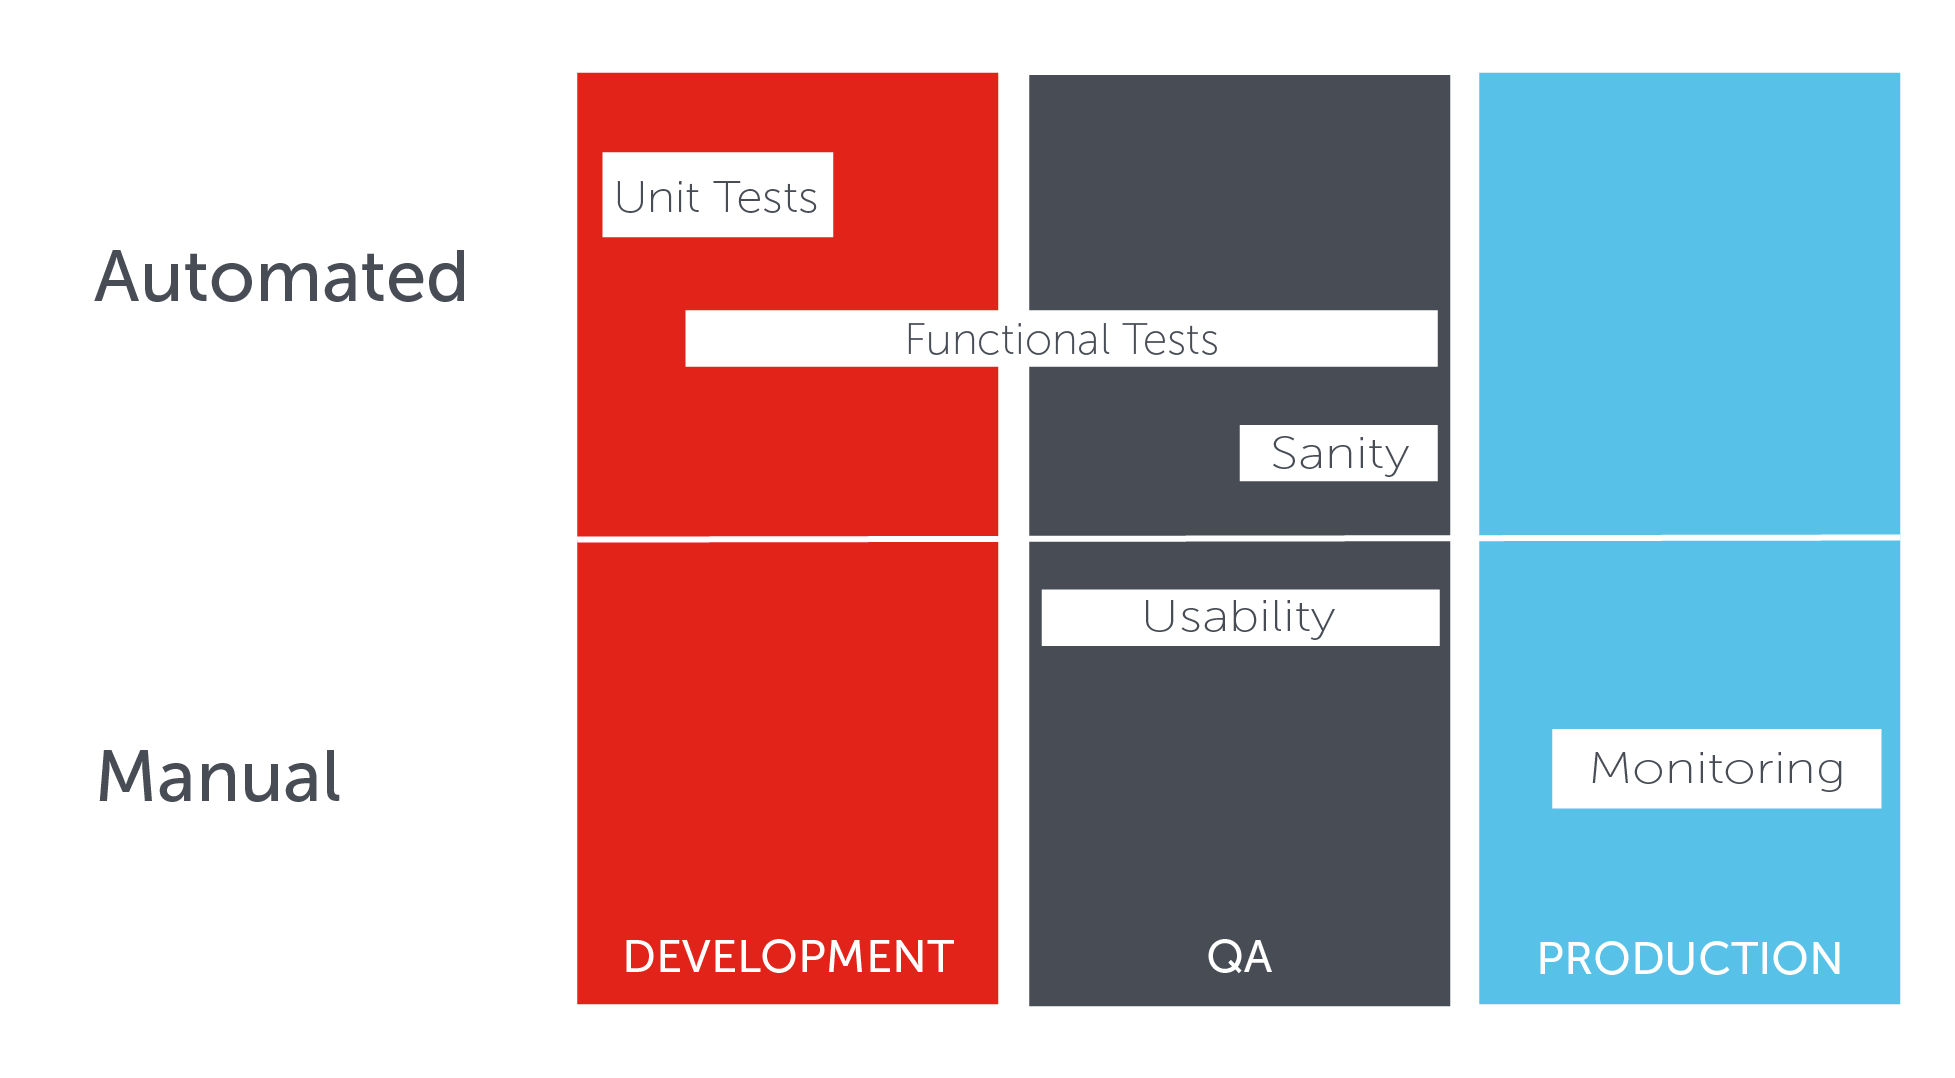 Tests to perform in the different life-cycle stages of a mobile app